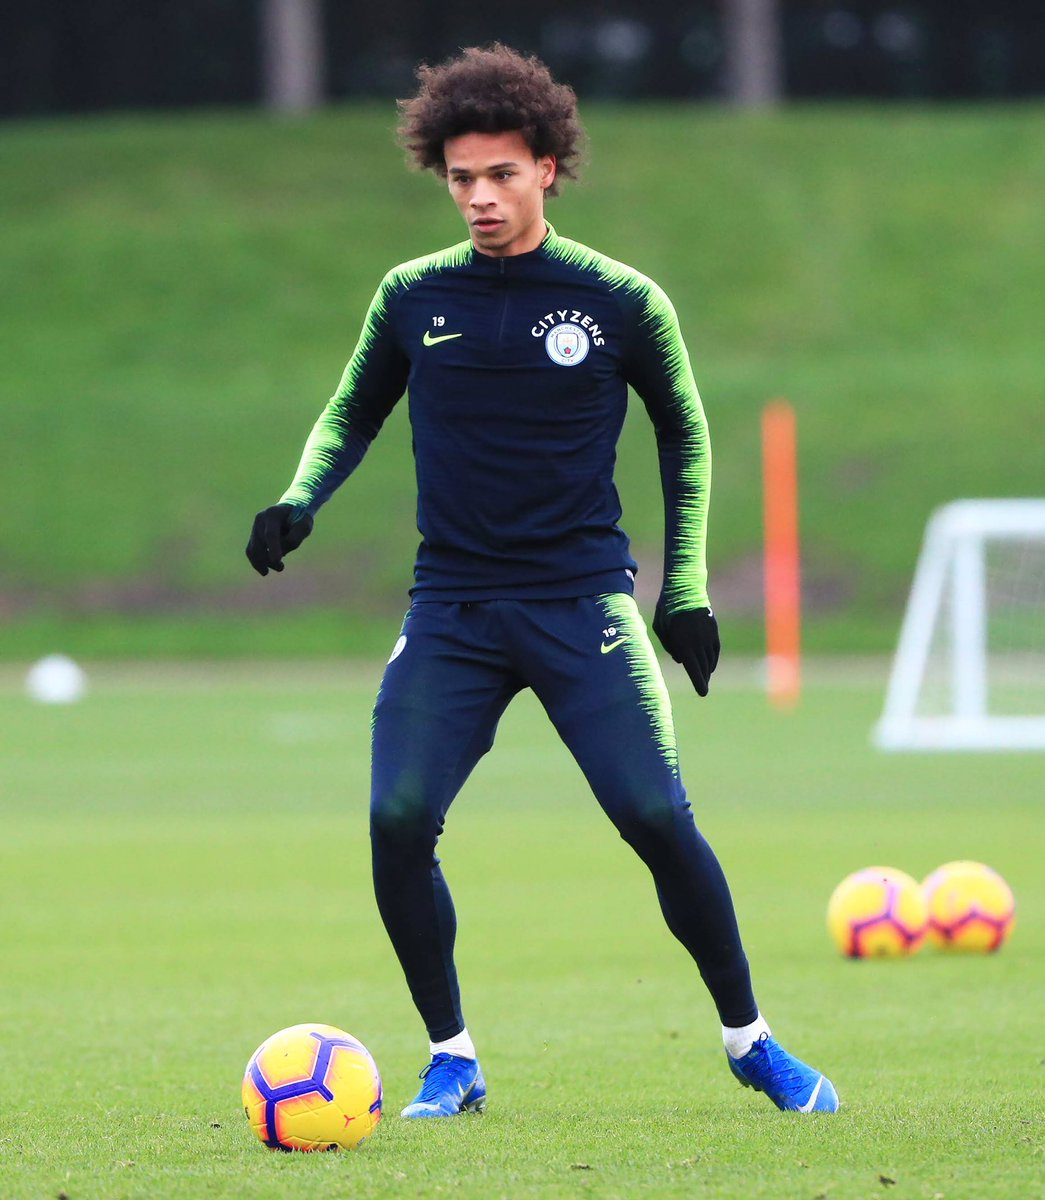 Staying focused 👊🏾⚽️ #LS19 #inSané @ManCity